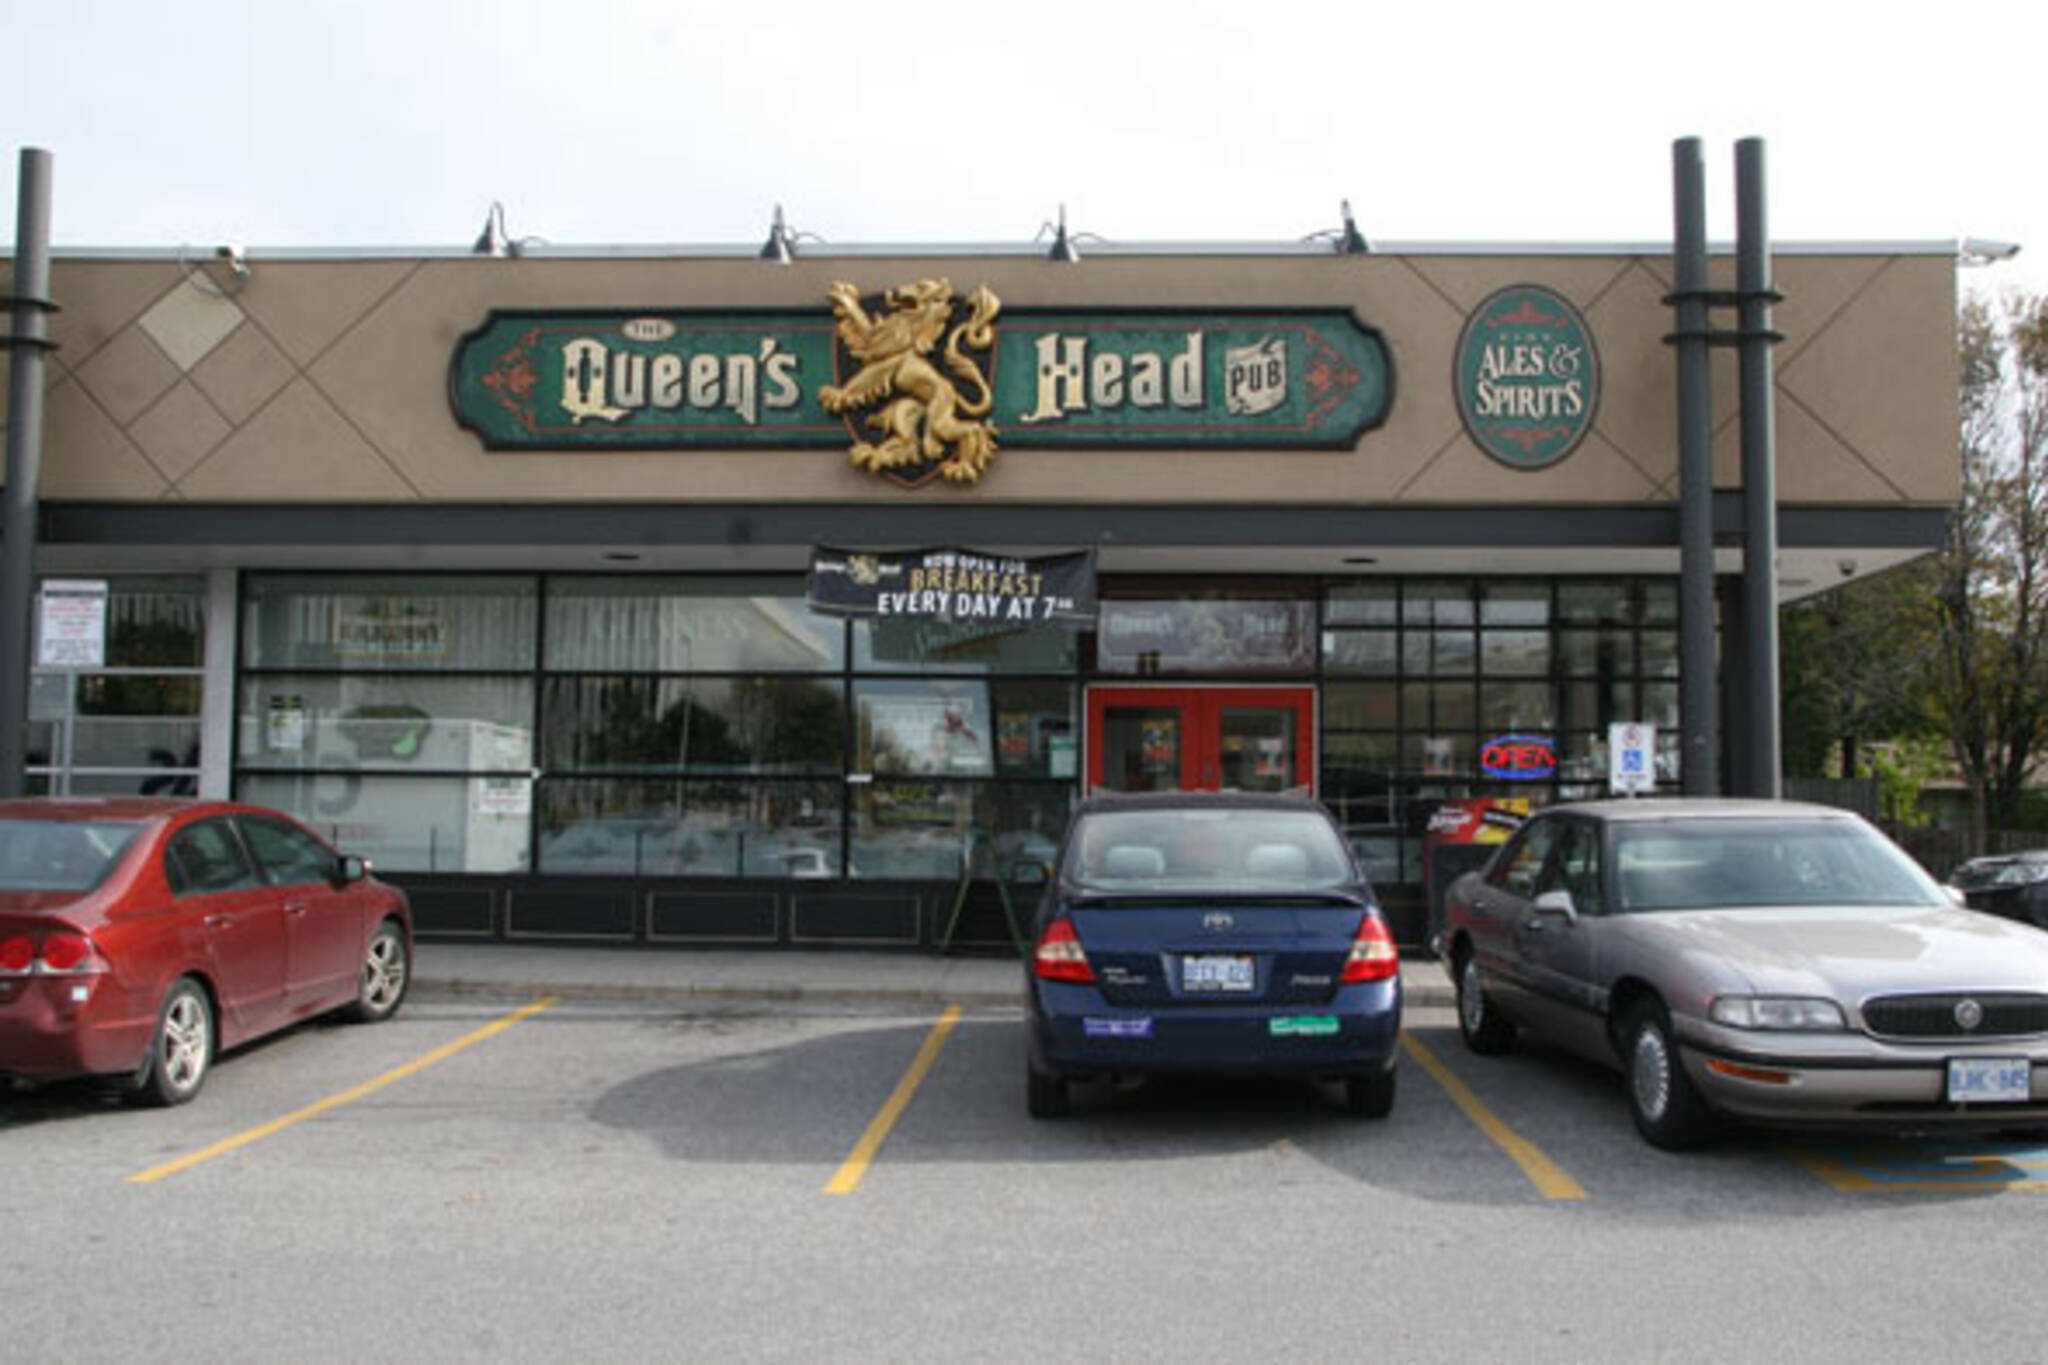 The Queenshead Pub (Scarborough) Toronto